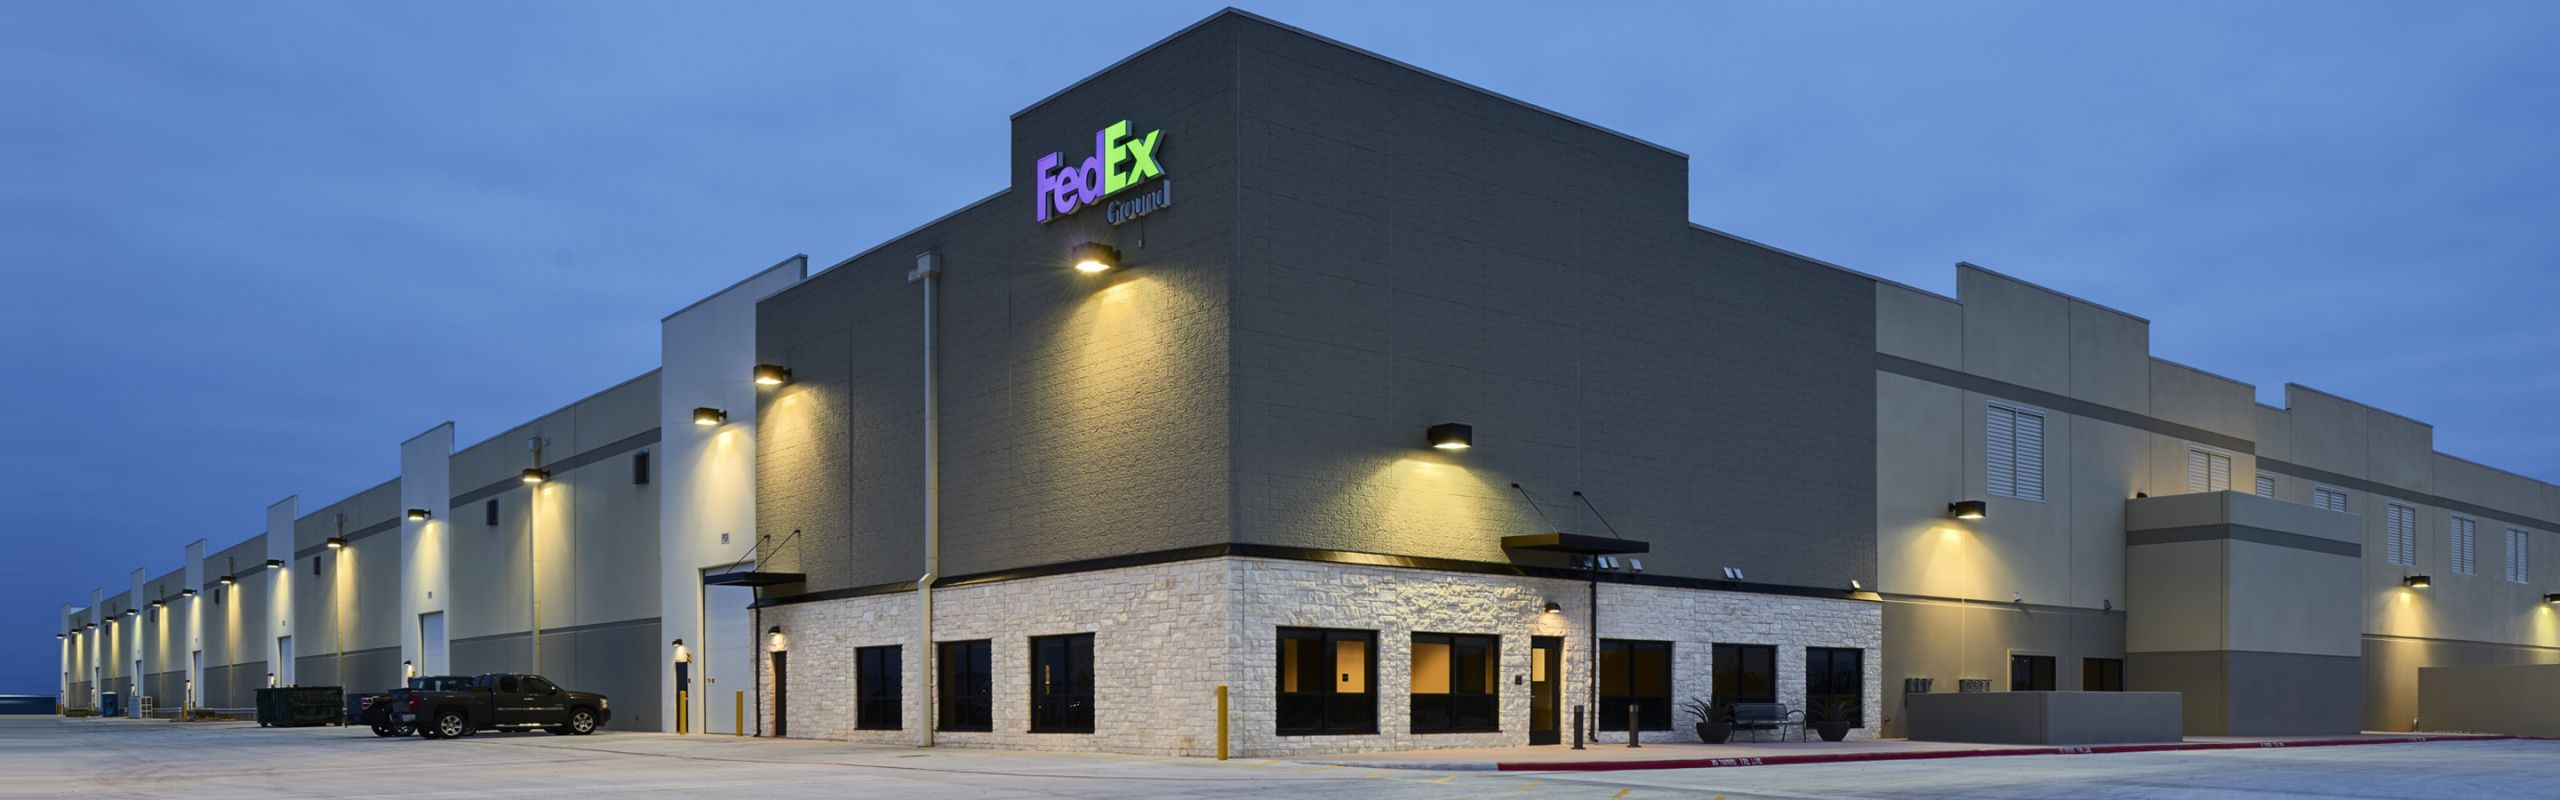 net leased fedex